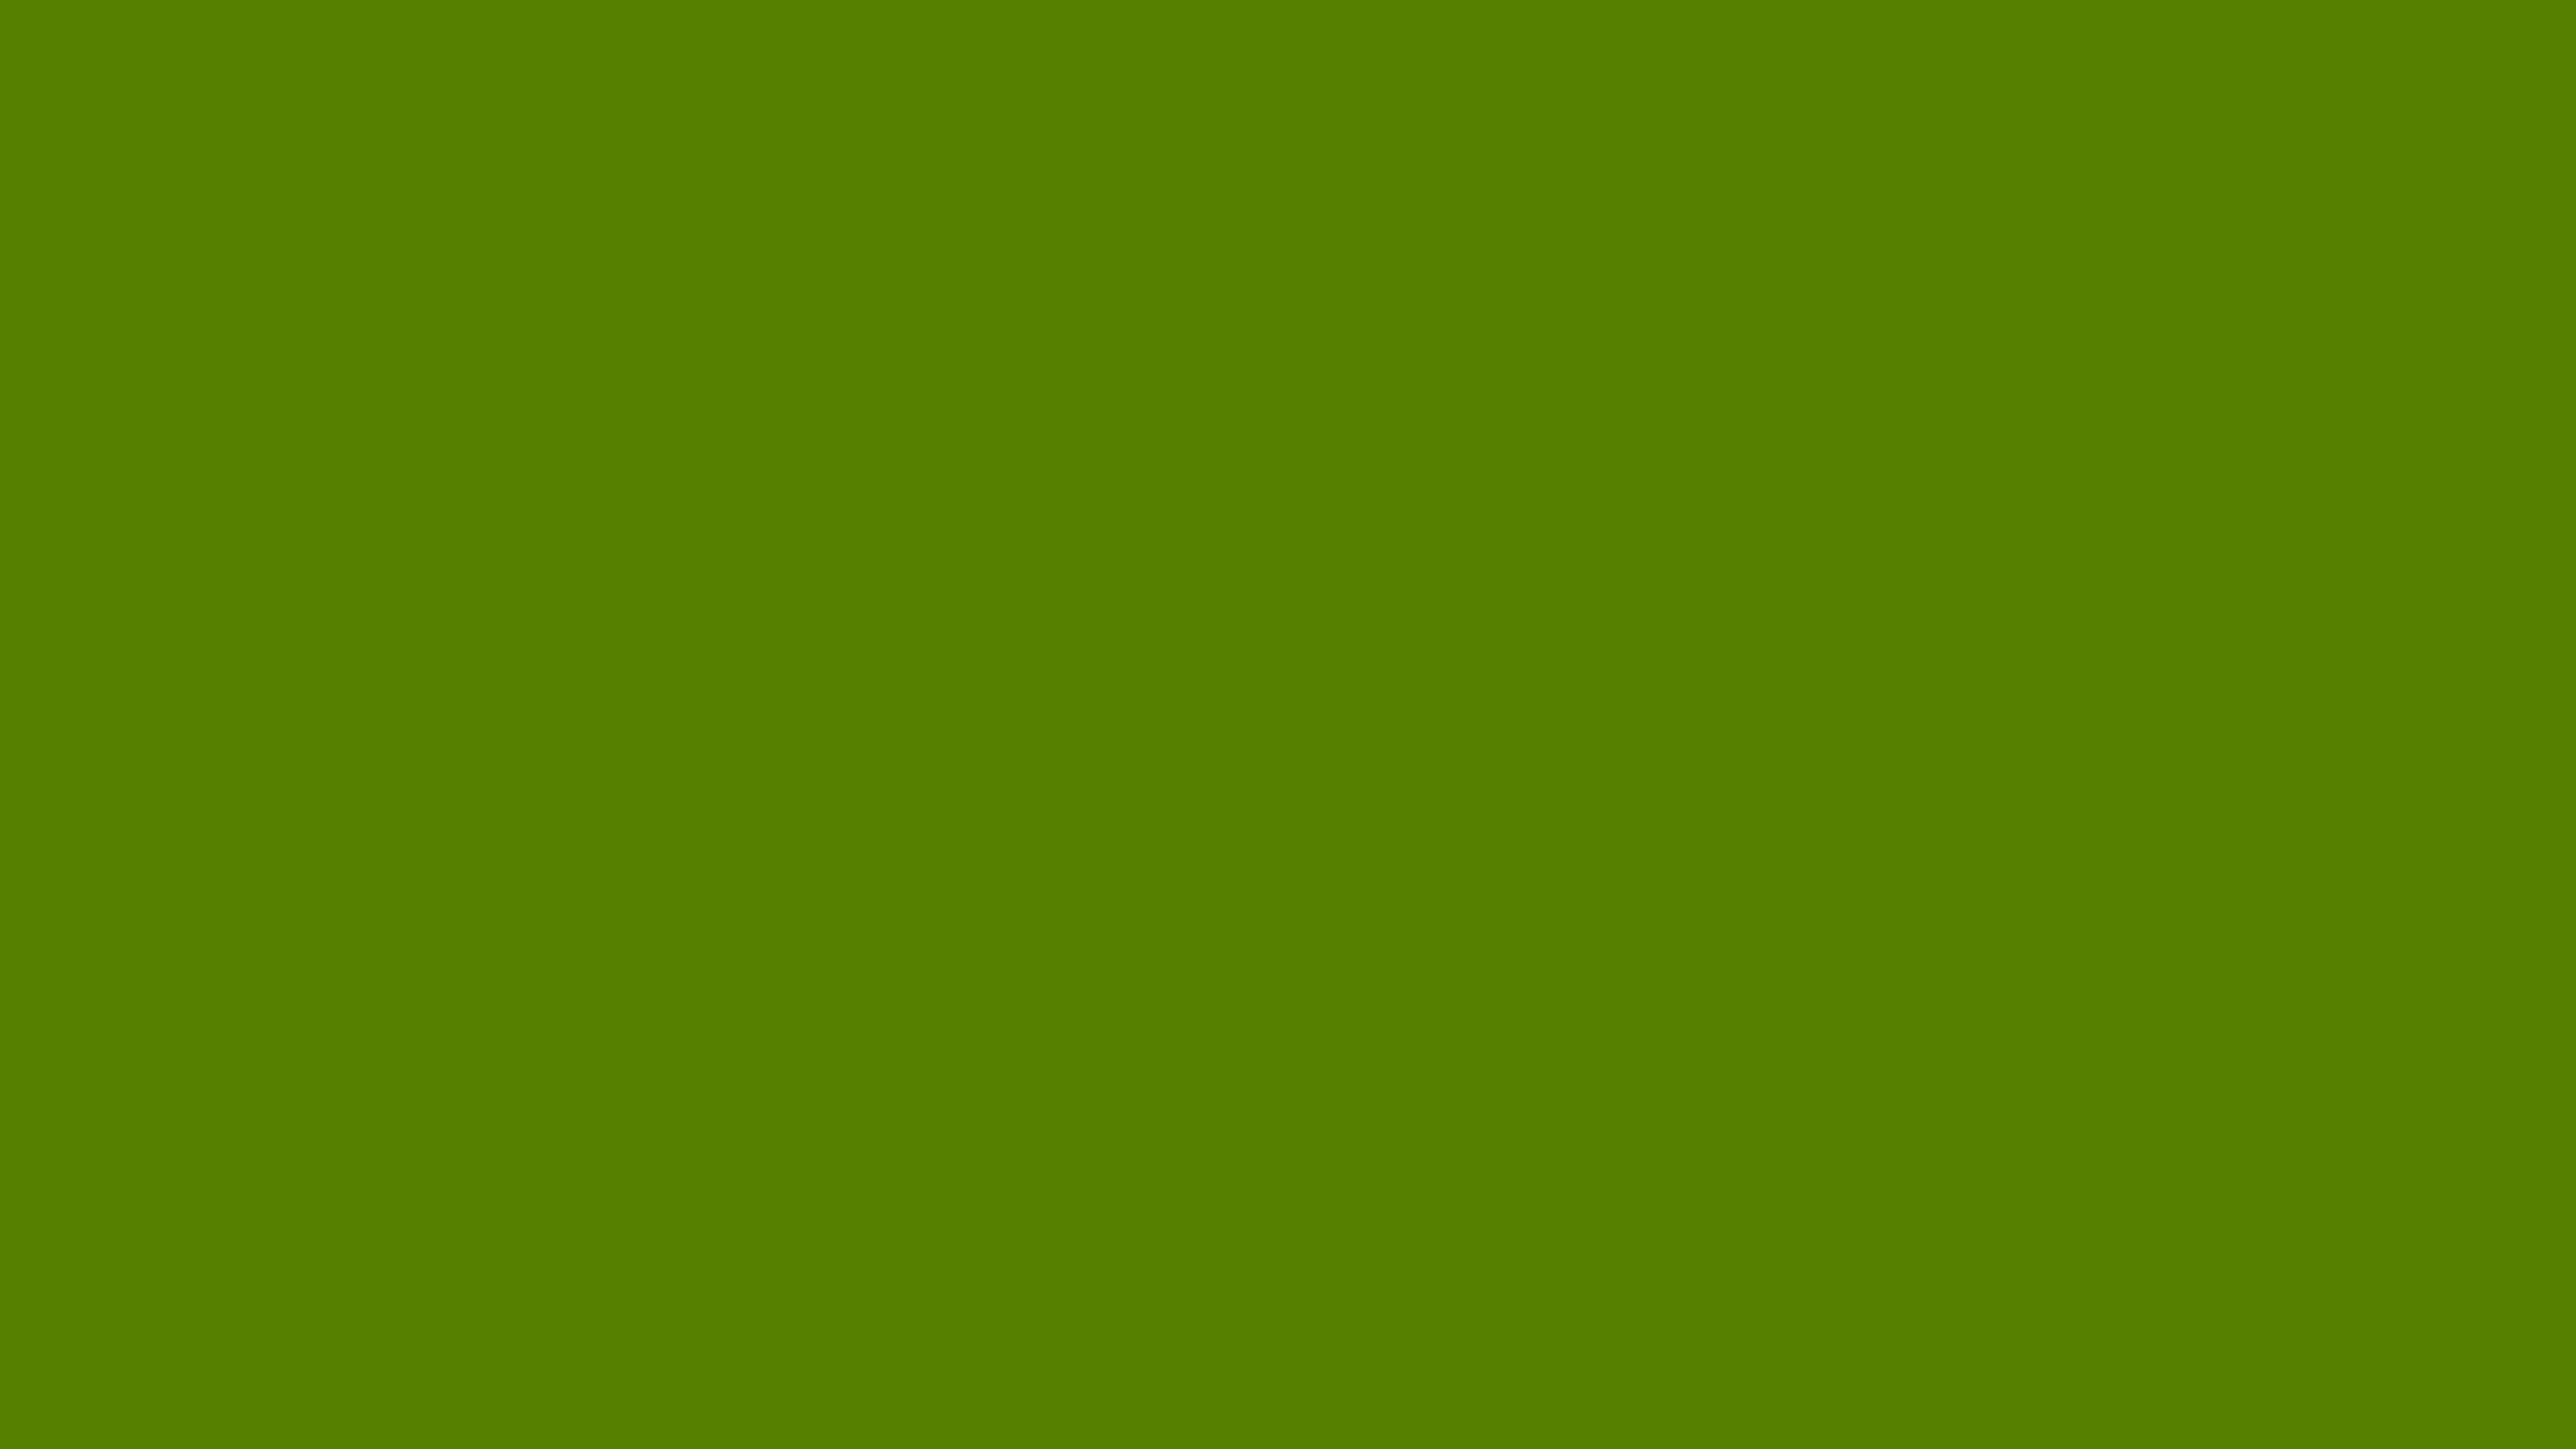 3840x2160 Avocado Solid Color Background